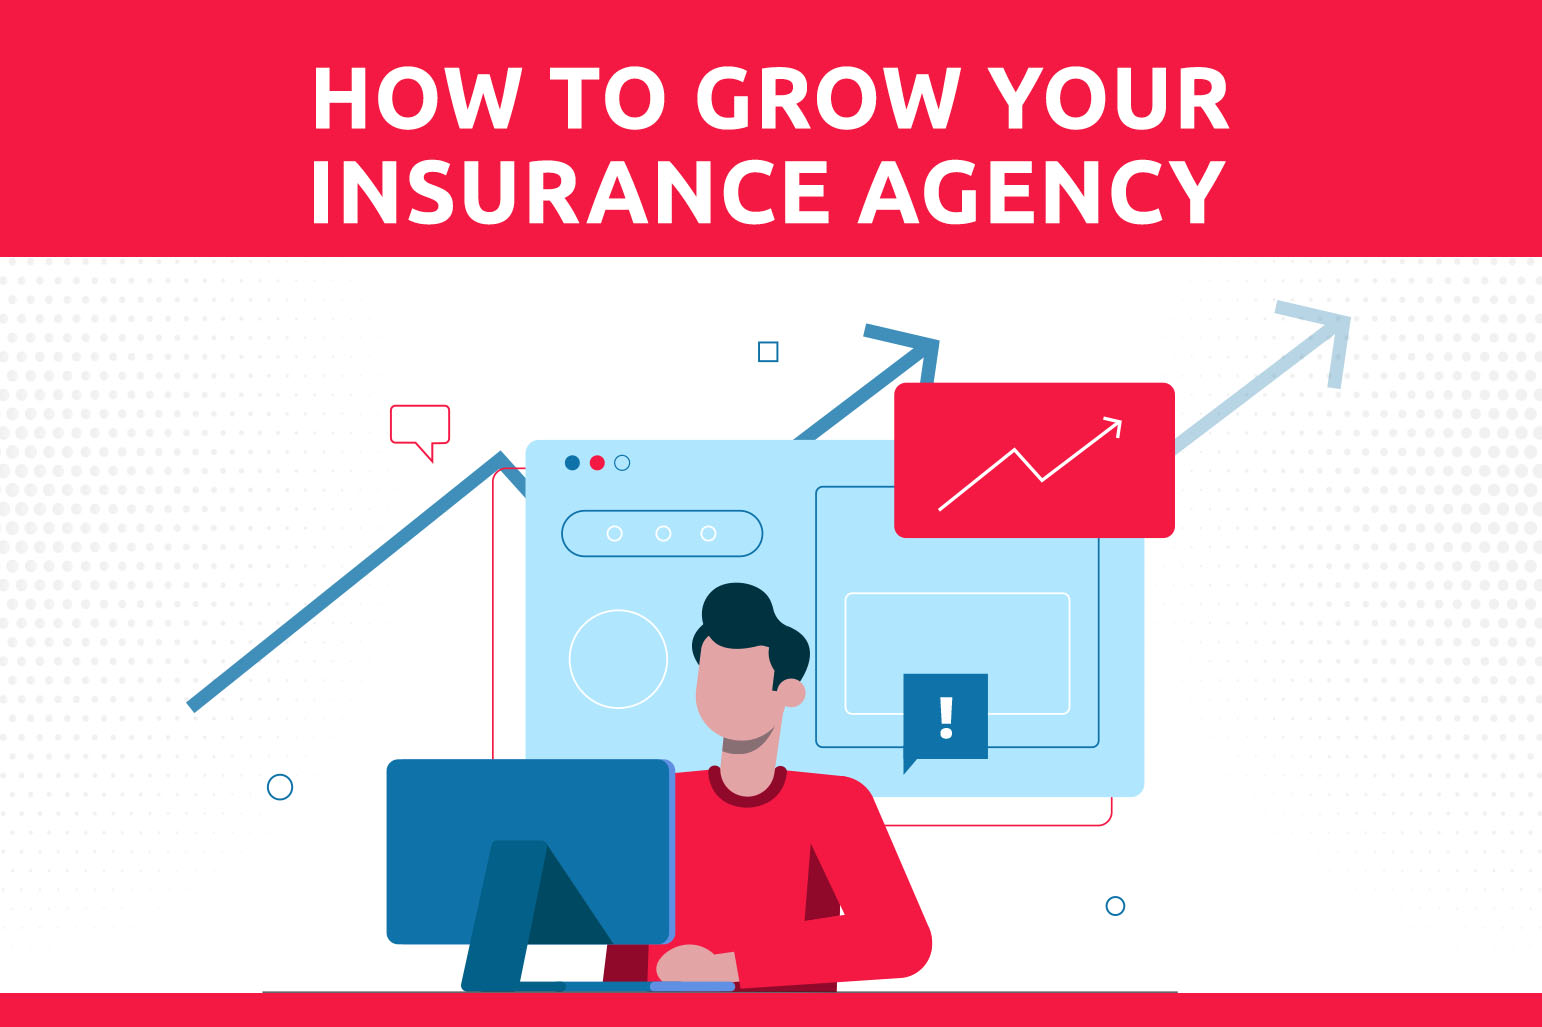 How To Grow Your Insurance Agency